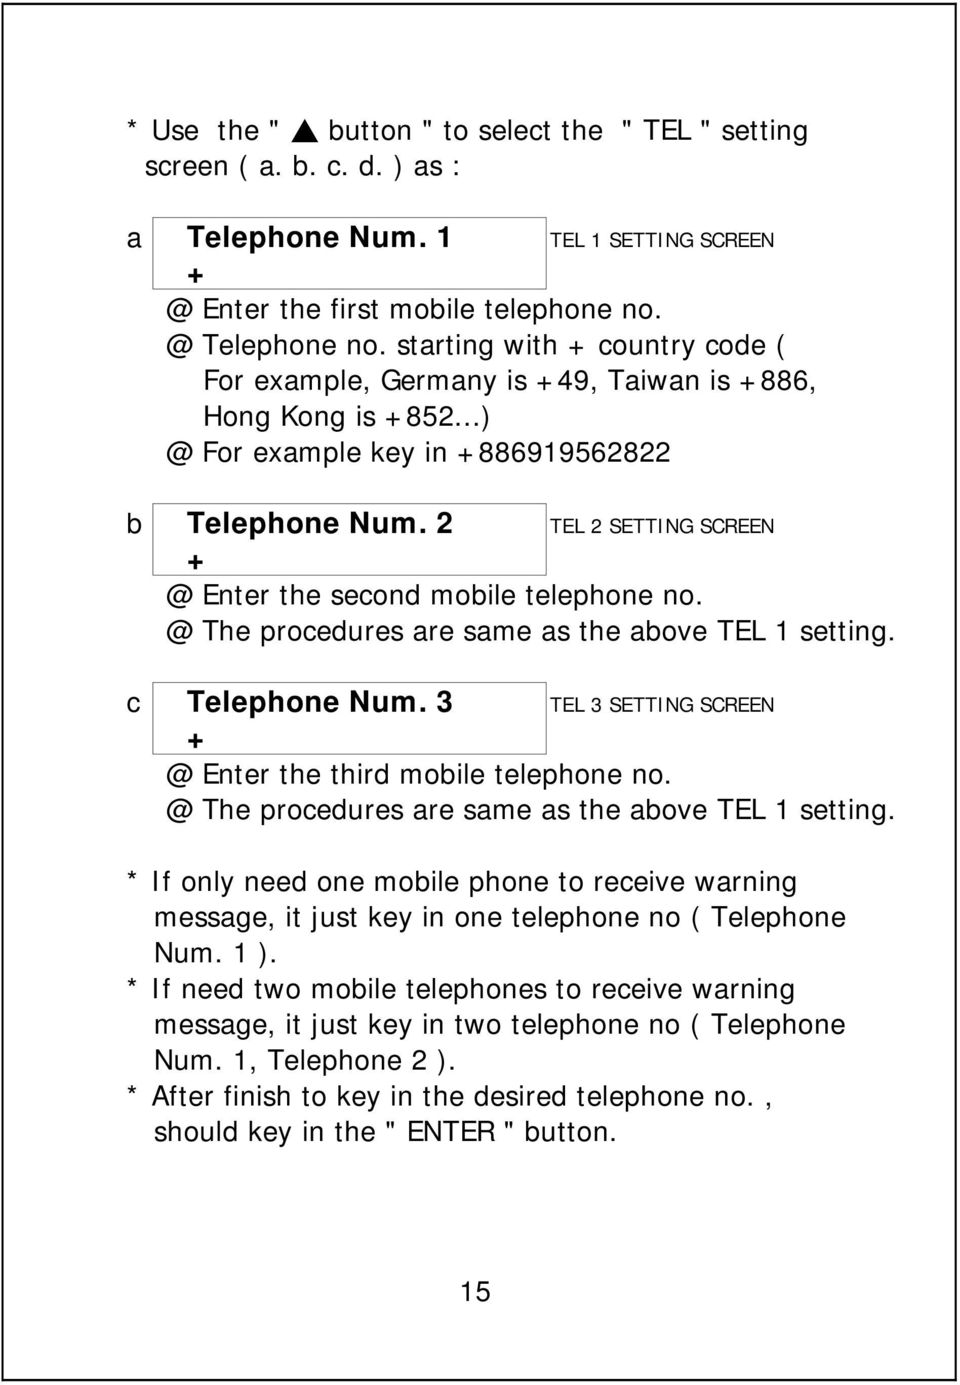 2 TEL 2 SETTING SCREEN + @ Enter the second mobile telephone no. @ The procedures are same as the above TEL 1 setting. c Telephone Num. 3 TEL 3 SETTING SCREEN + @ Enter the third mobile telephone no.